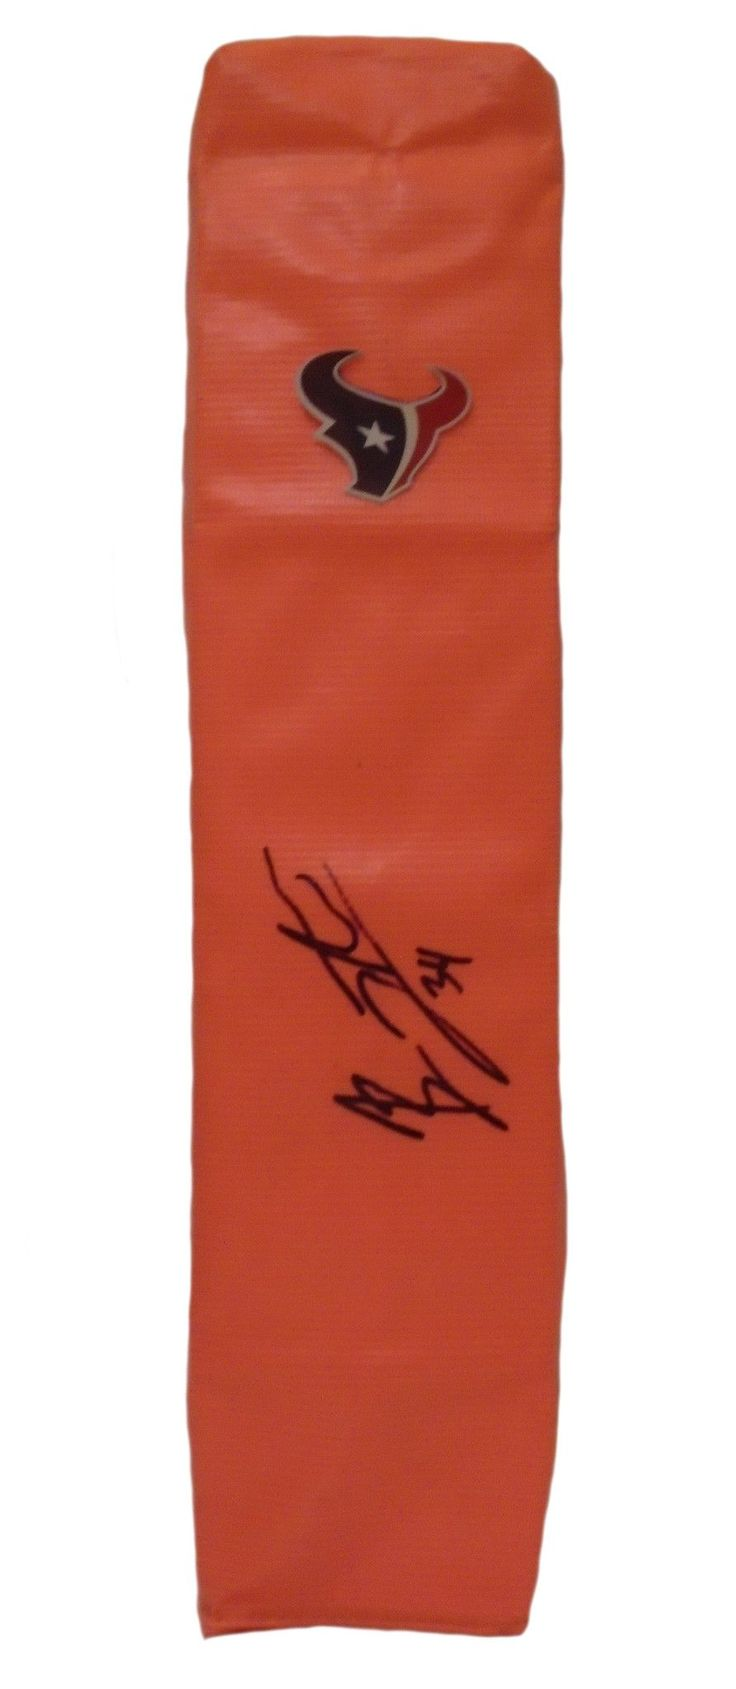 Ben Tate signed Houston Texans full size football touchdown end zone pylon w/ proof photo.  Proof photo of Ben signing will be included with your purchase along with a COA issued from Southwestconnection-Memorabilia, guaranteeing the item to pass authentication services from PSA/DNA or JSA. Free USPS shipping. www.AutographedwithProof.com is your one stop for autographed collectibles from Auburn Tigers & NCAA sports teams. Check back with us often, as we are always obtaining new items.